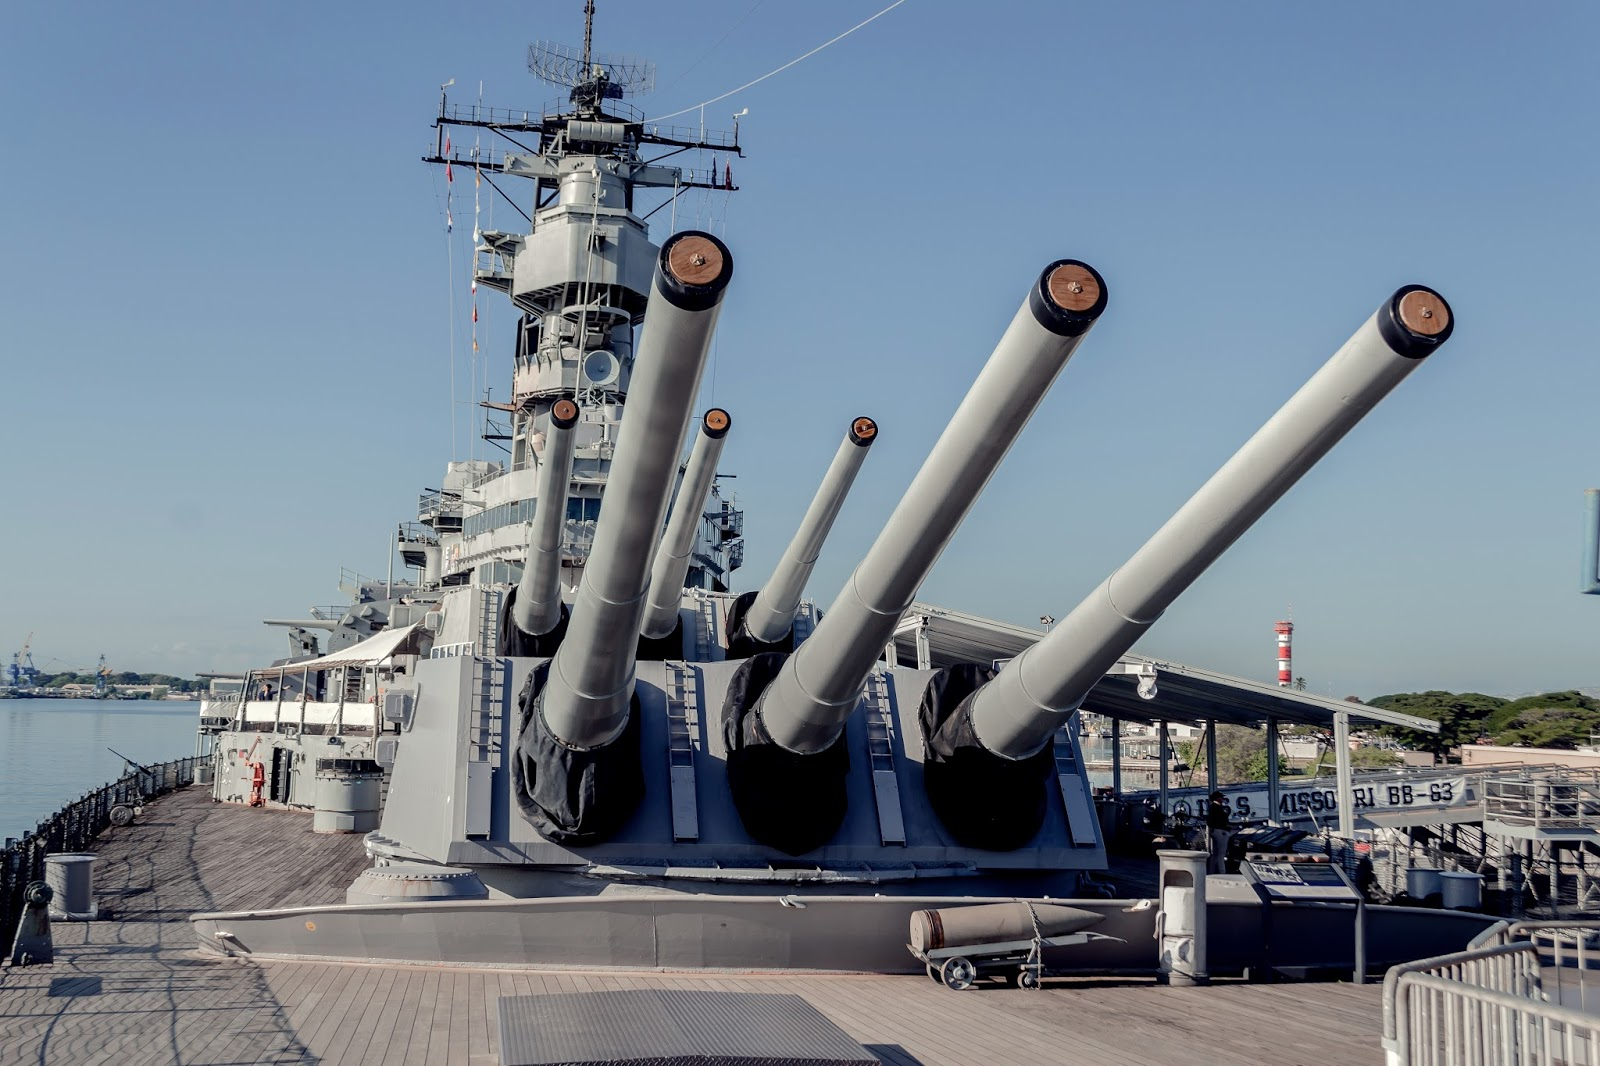 Battleship Missouri in Pearl Harbour, Hawaii